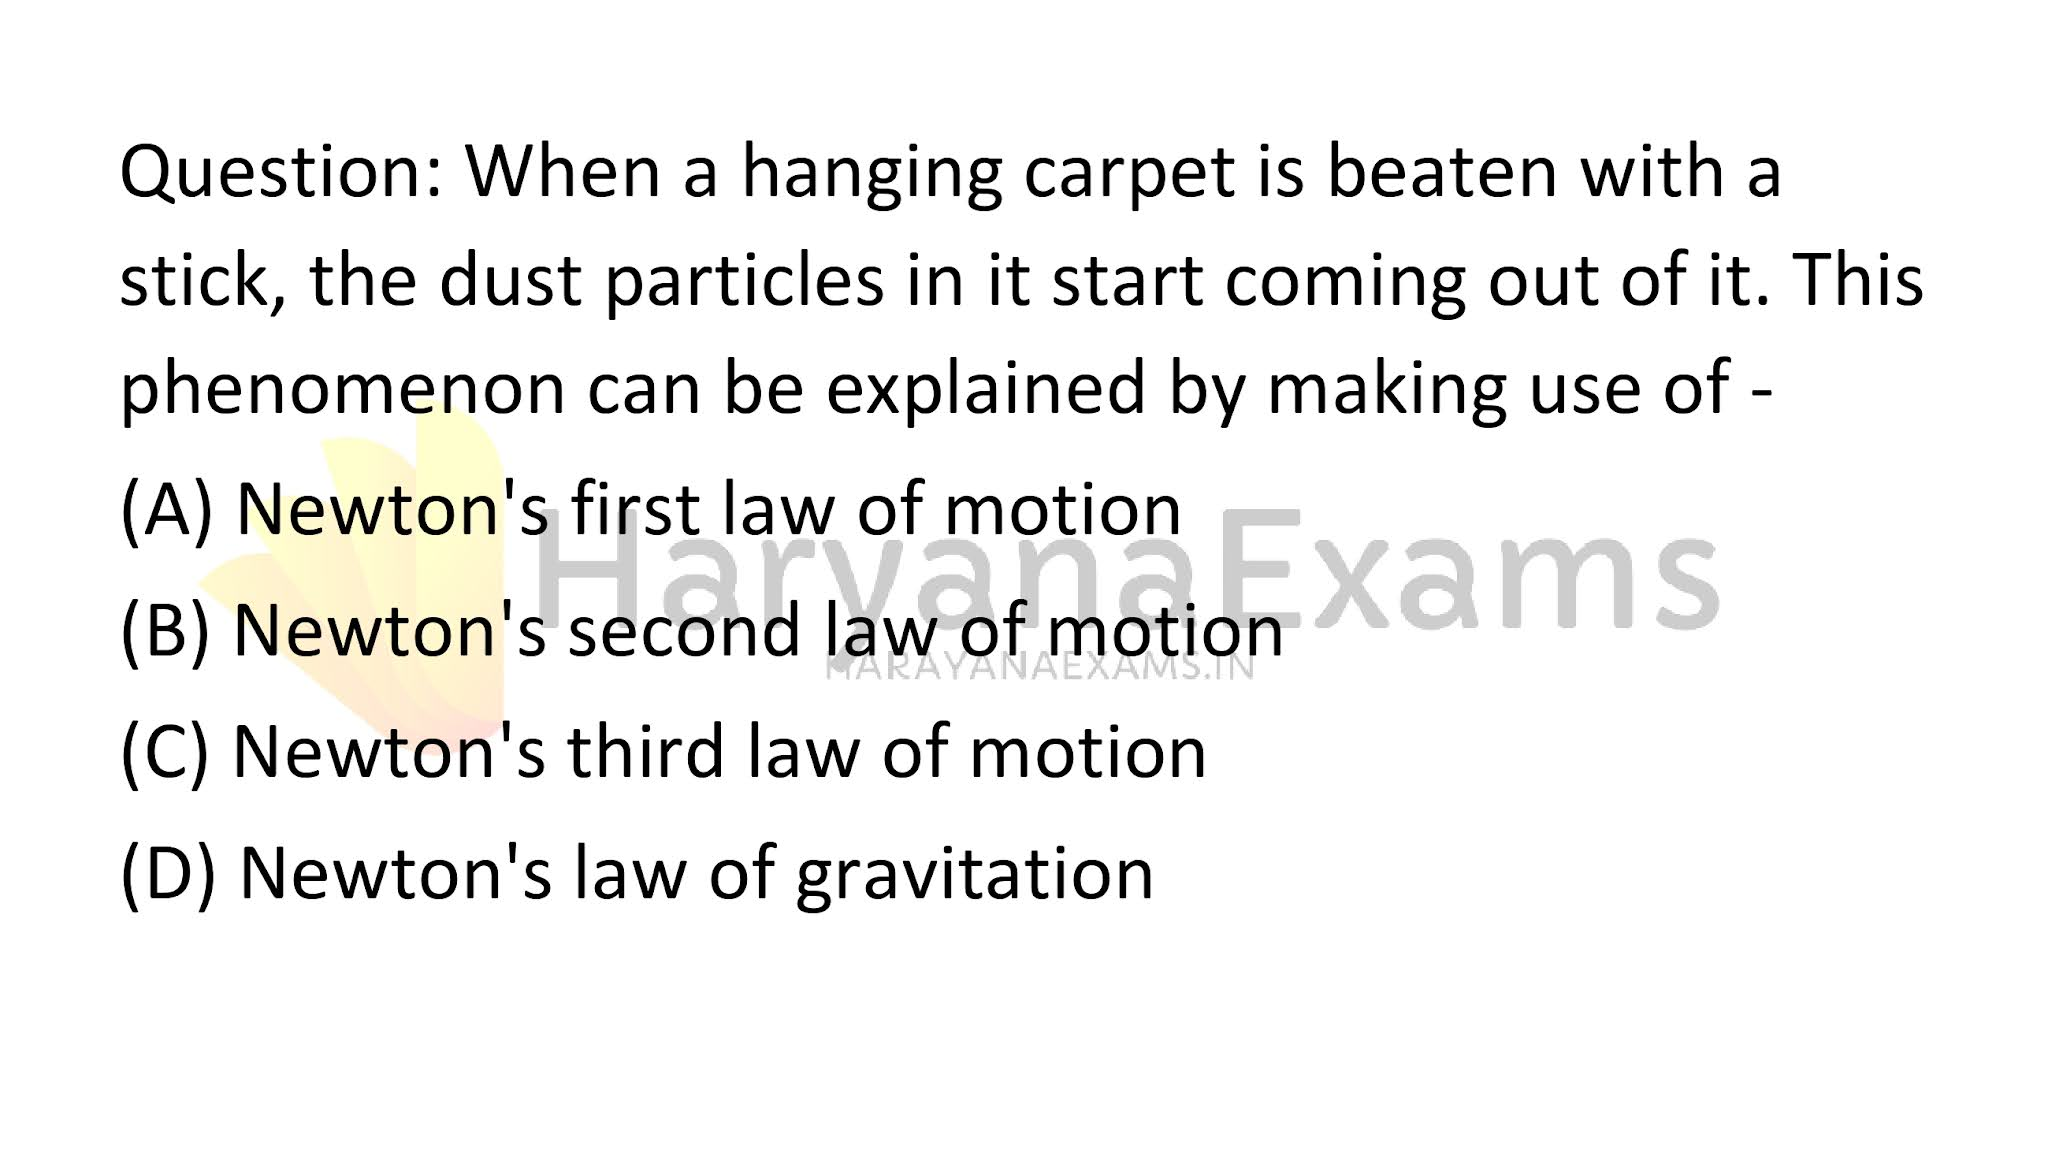 When a hanging carpet is beaten with a stick, the dust particles in it start coming out of it. This phenomenon can be explained by making use of -